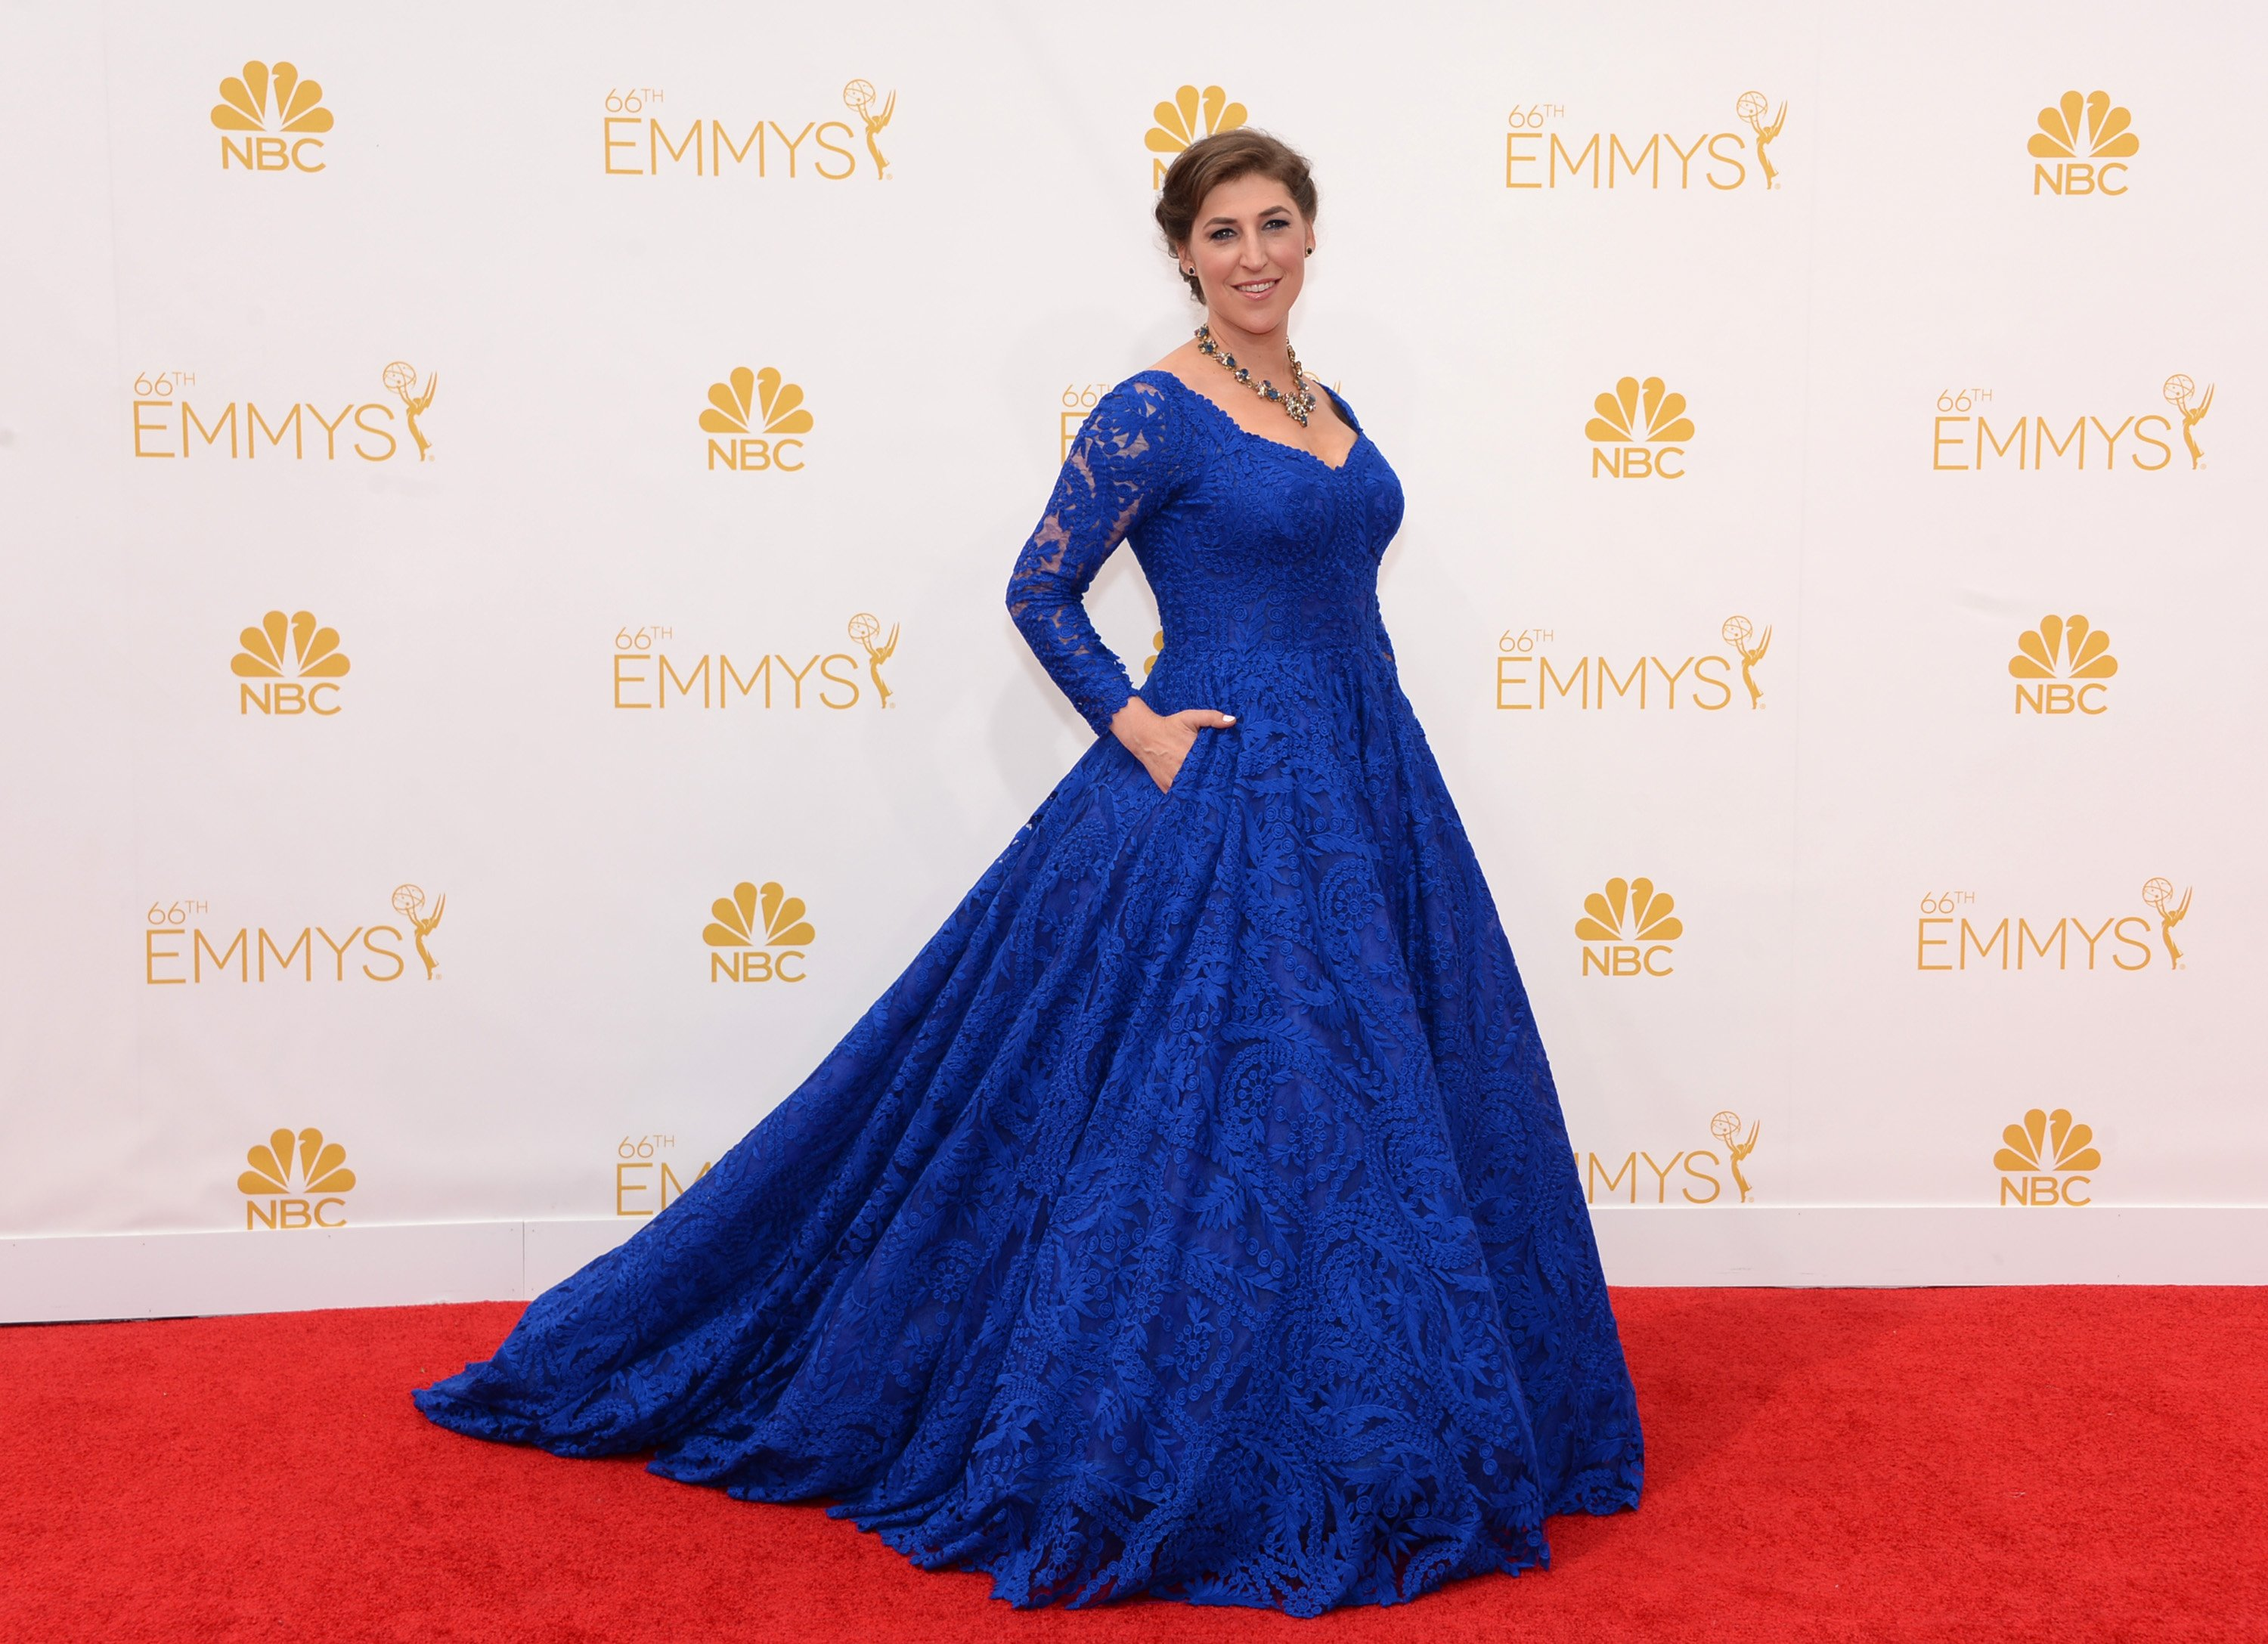 Mayim Bialik arrives at the 66th Primetime Emmy Awards at the Nokia Theatre L.A. Live on Monday, Aug. 25, 2014, in Los Angeles.